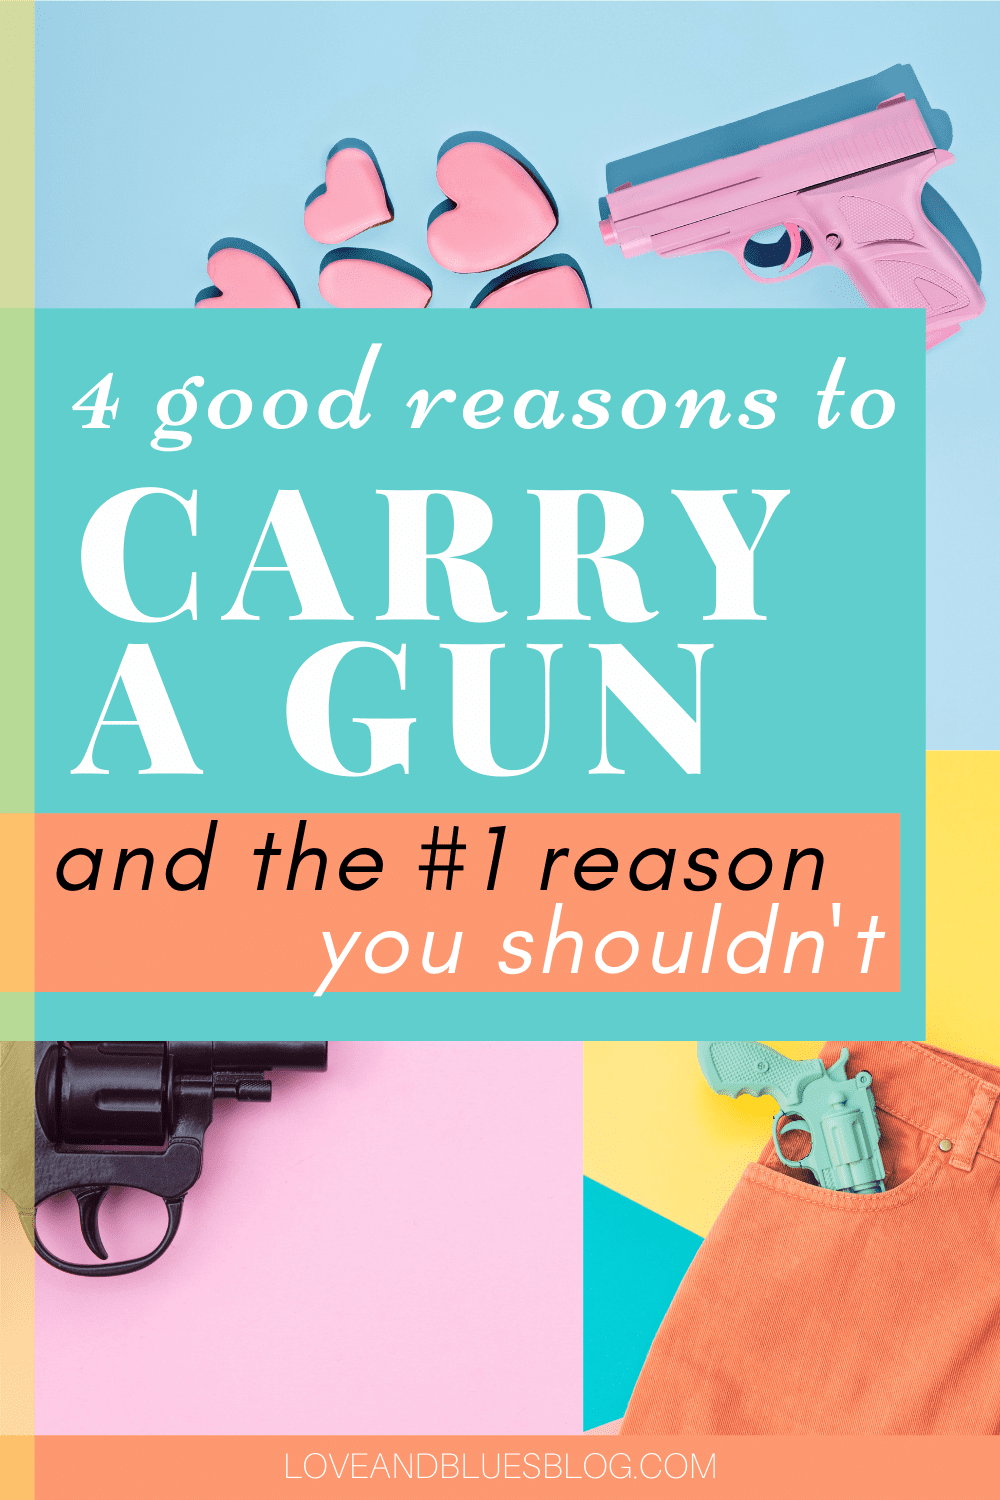 Love this! I've been on the fence about getting my concealed carry permit, but I'm gonna get it tomorrow. These are solid reasons to carry a gun.